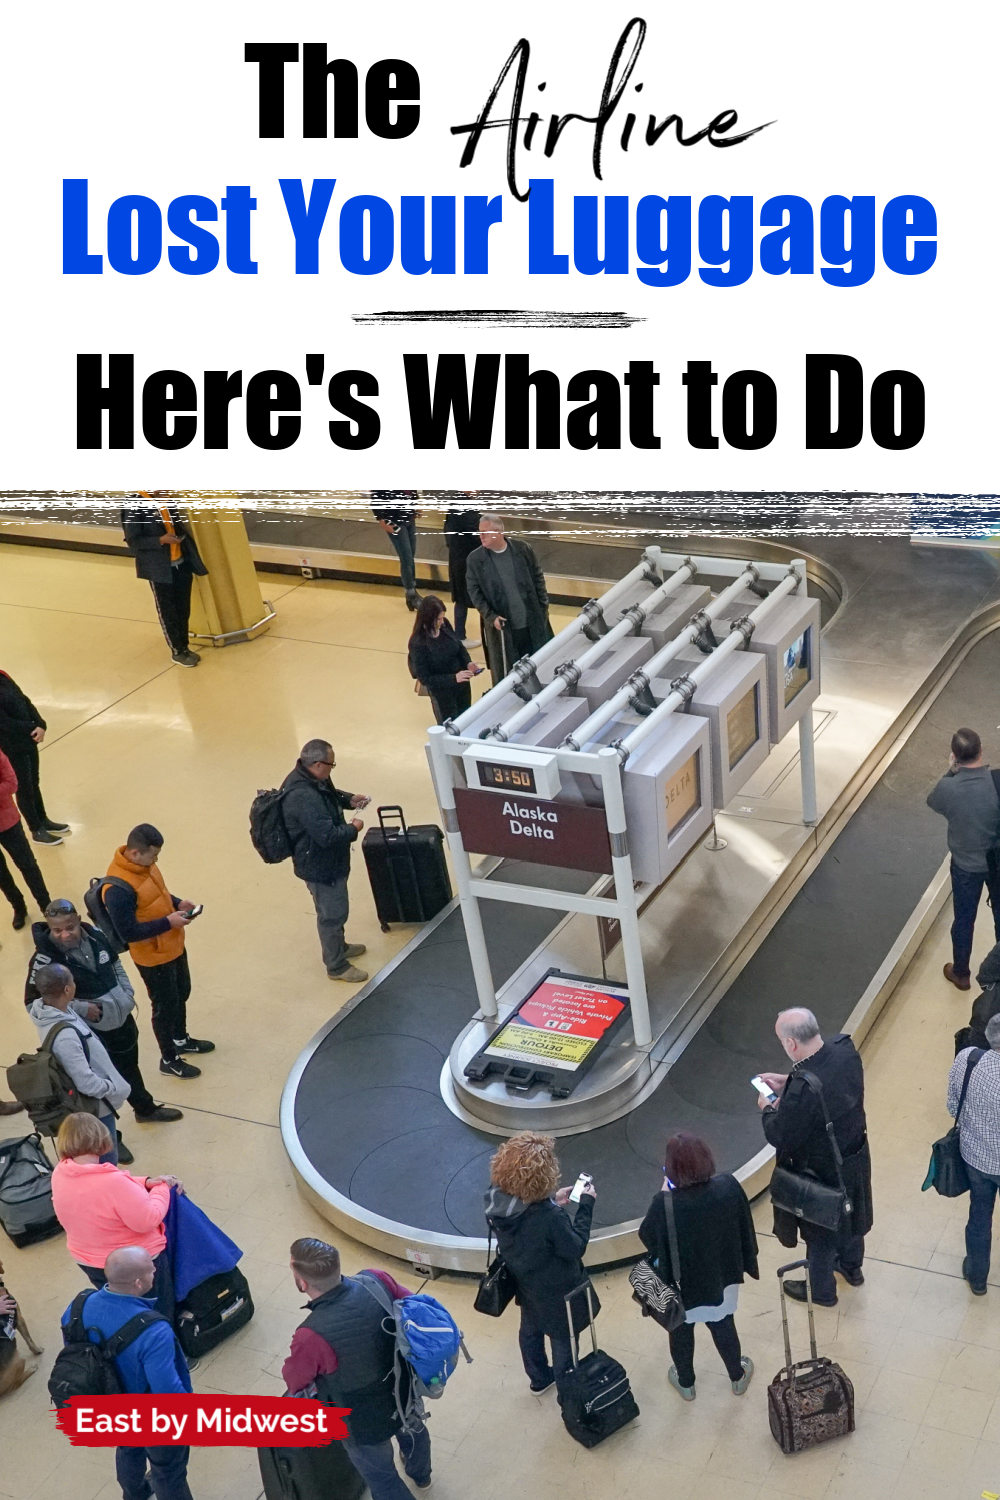 Lost or Delayed Luggage: What to Do and How to Get Compensated